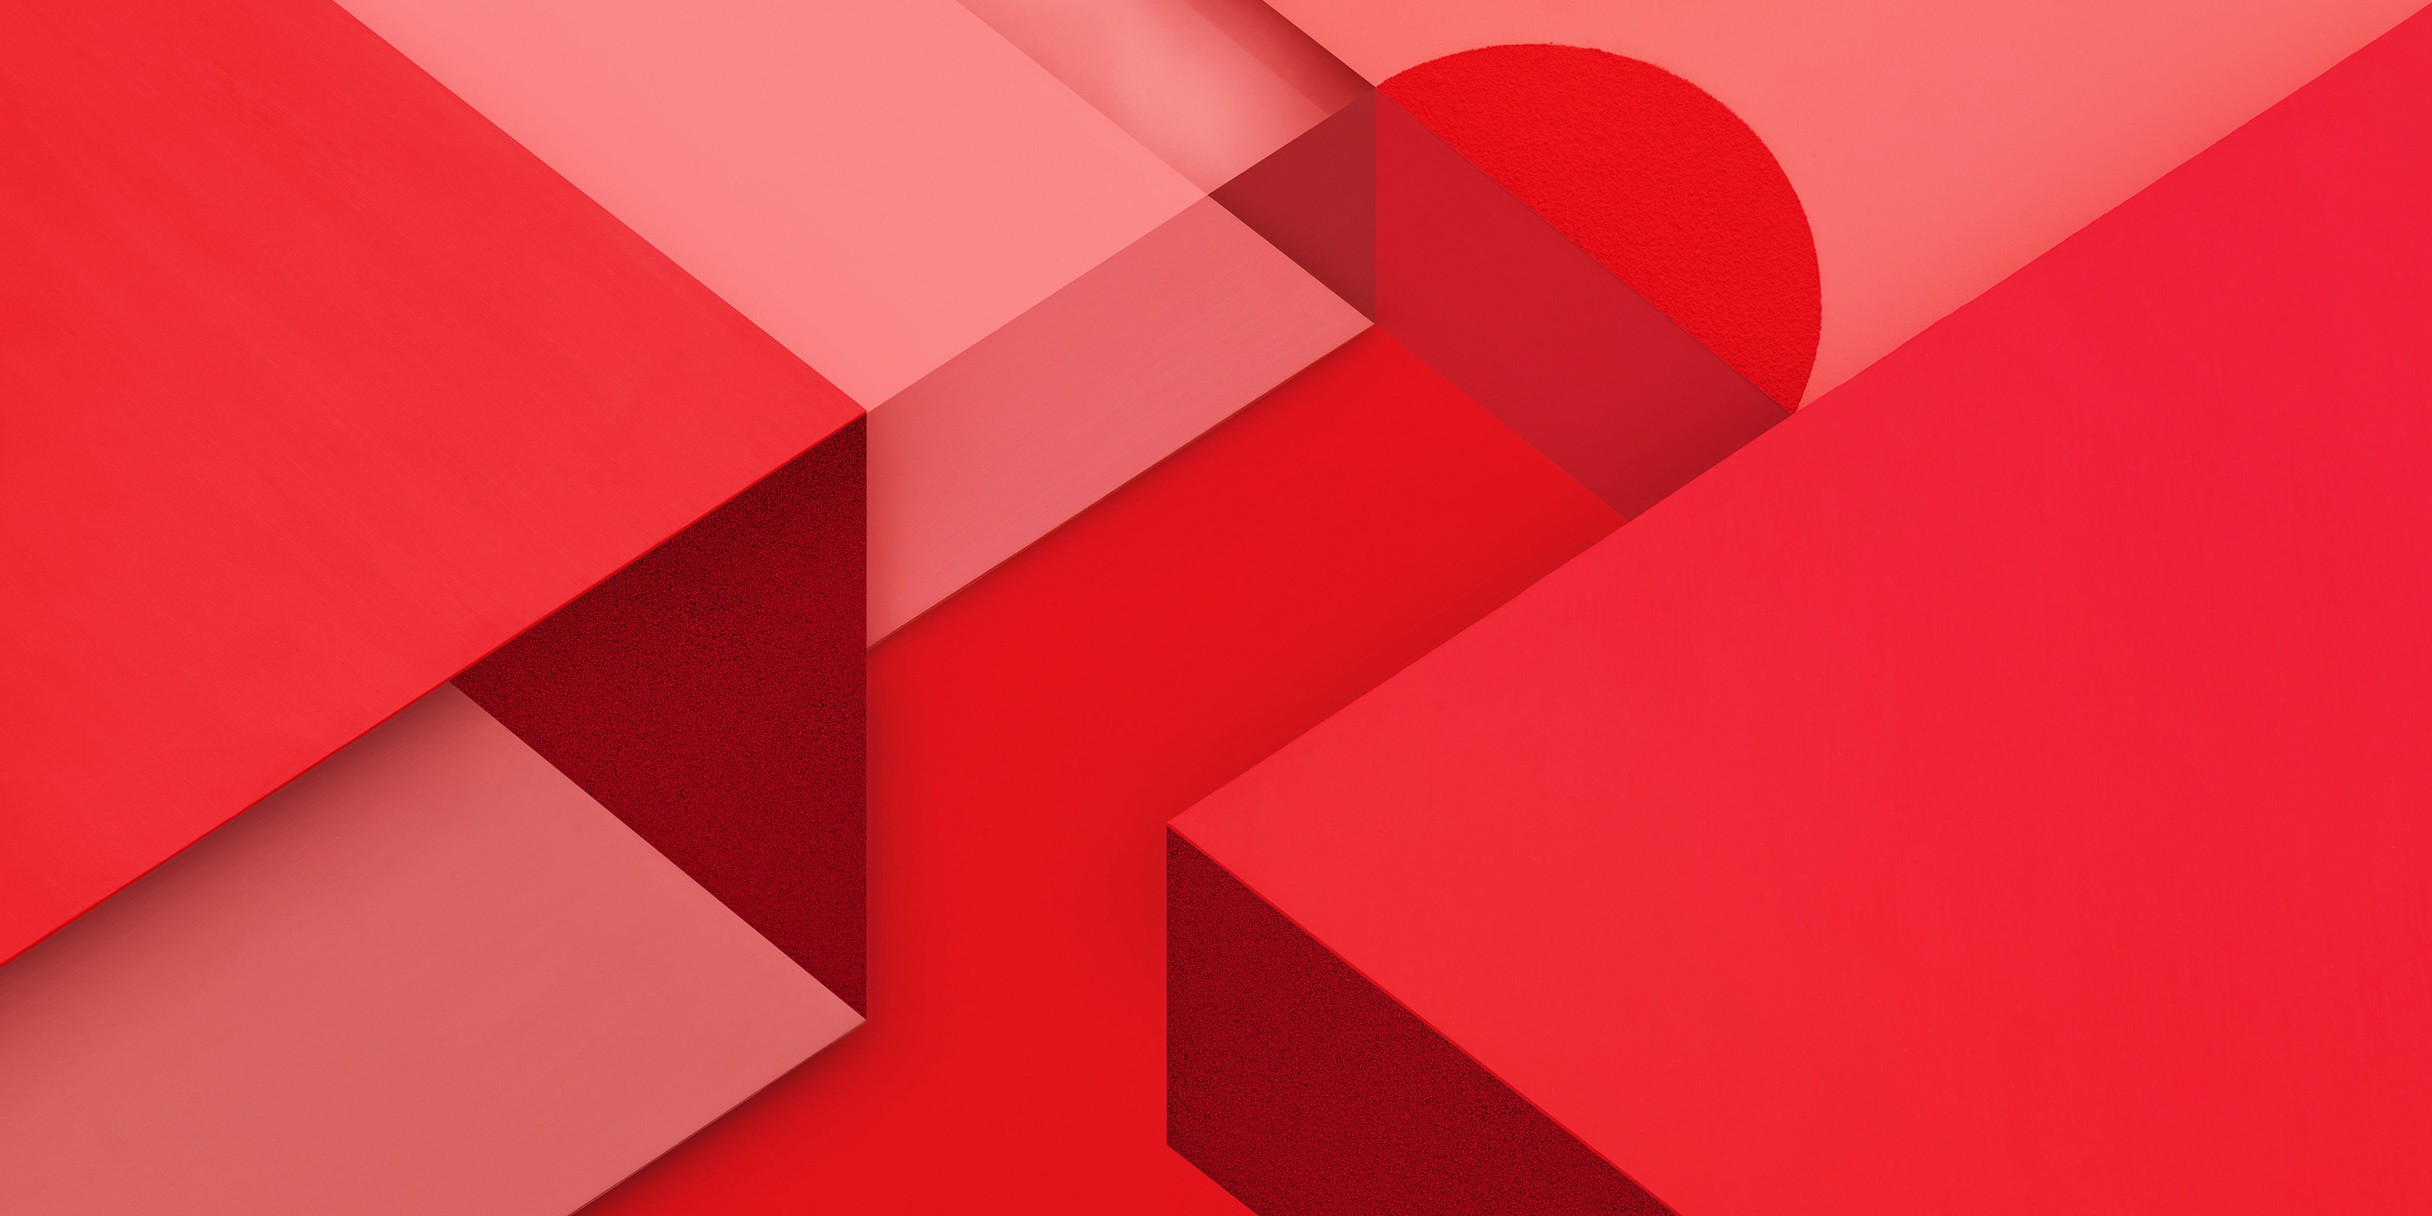 Red geometric imagery based on material design.